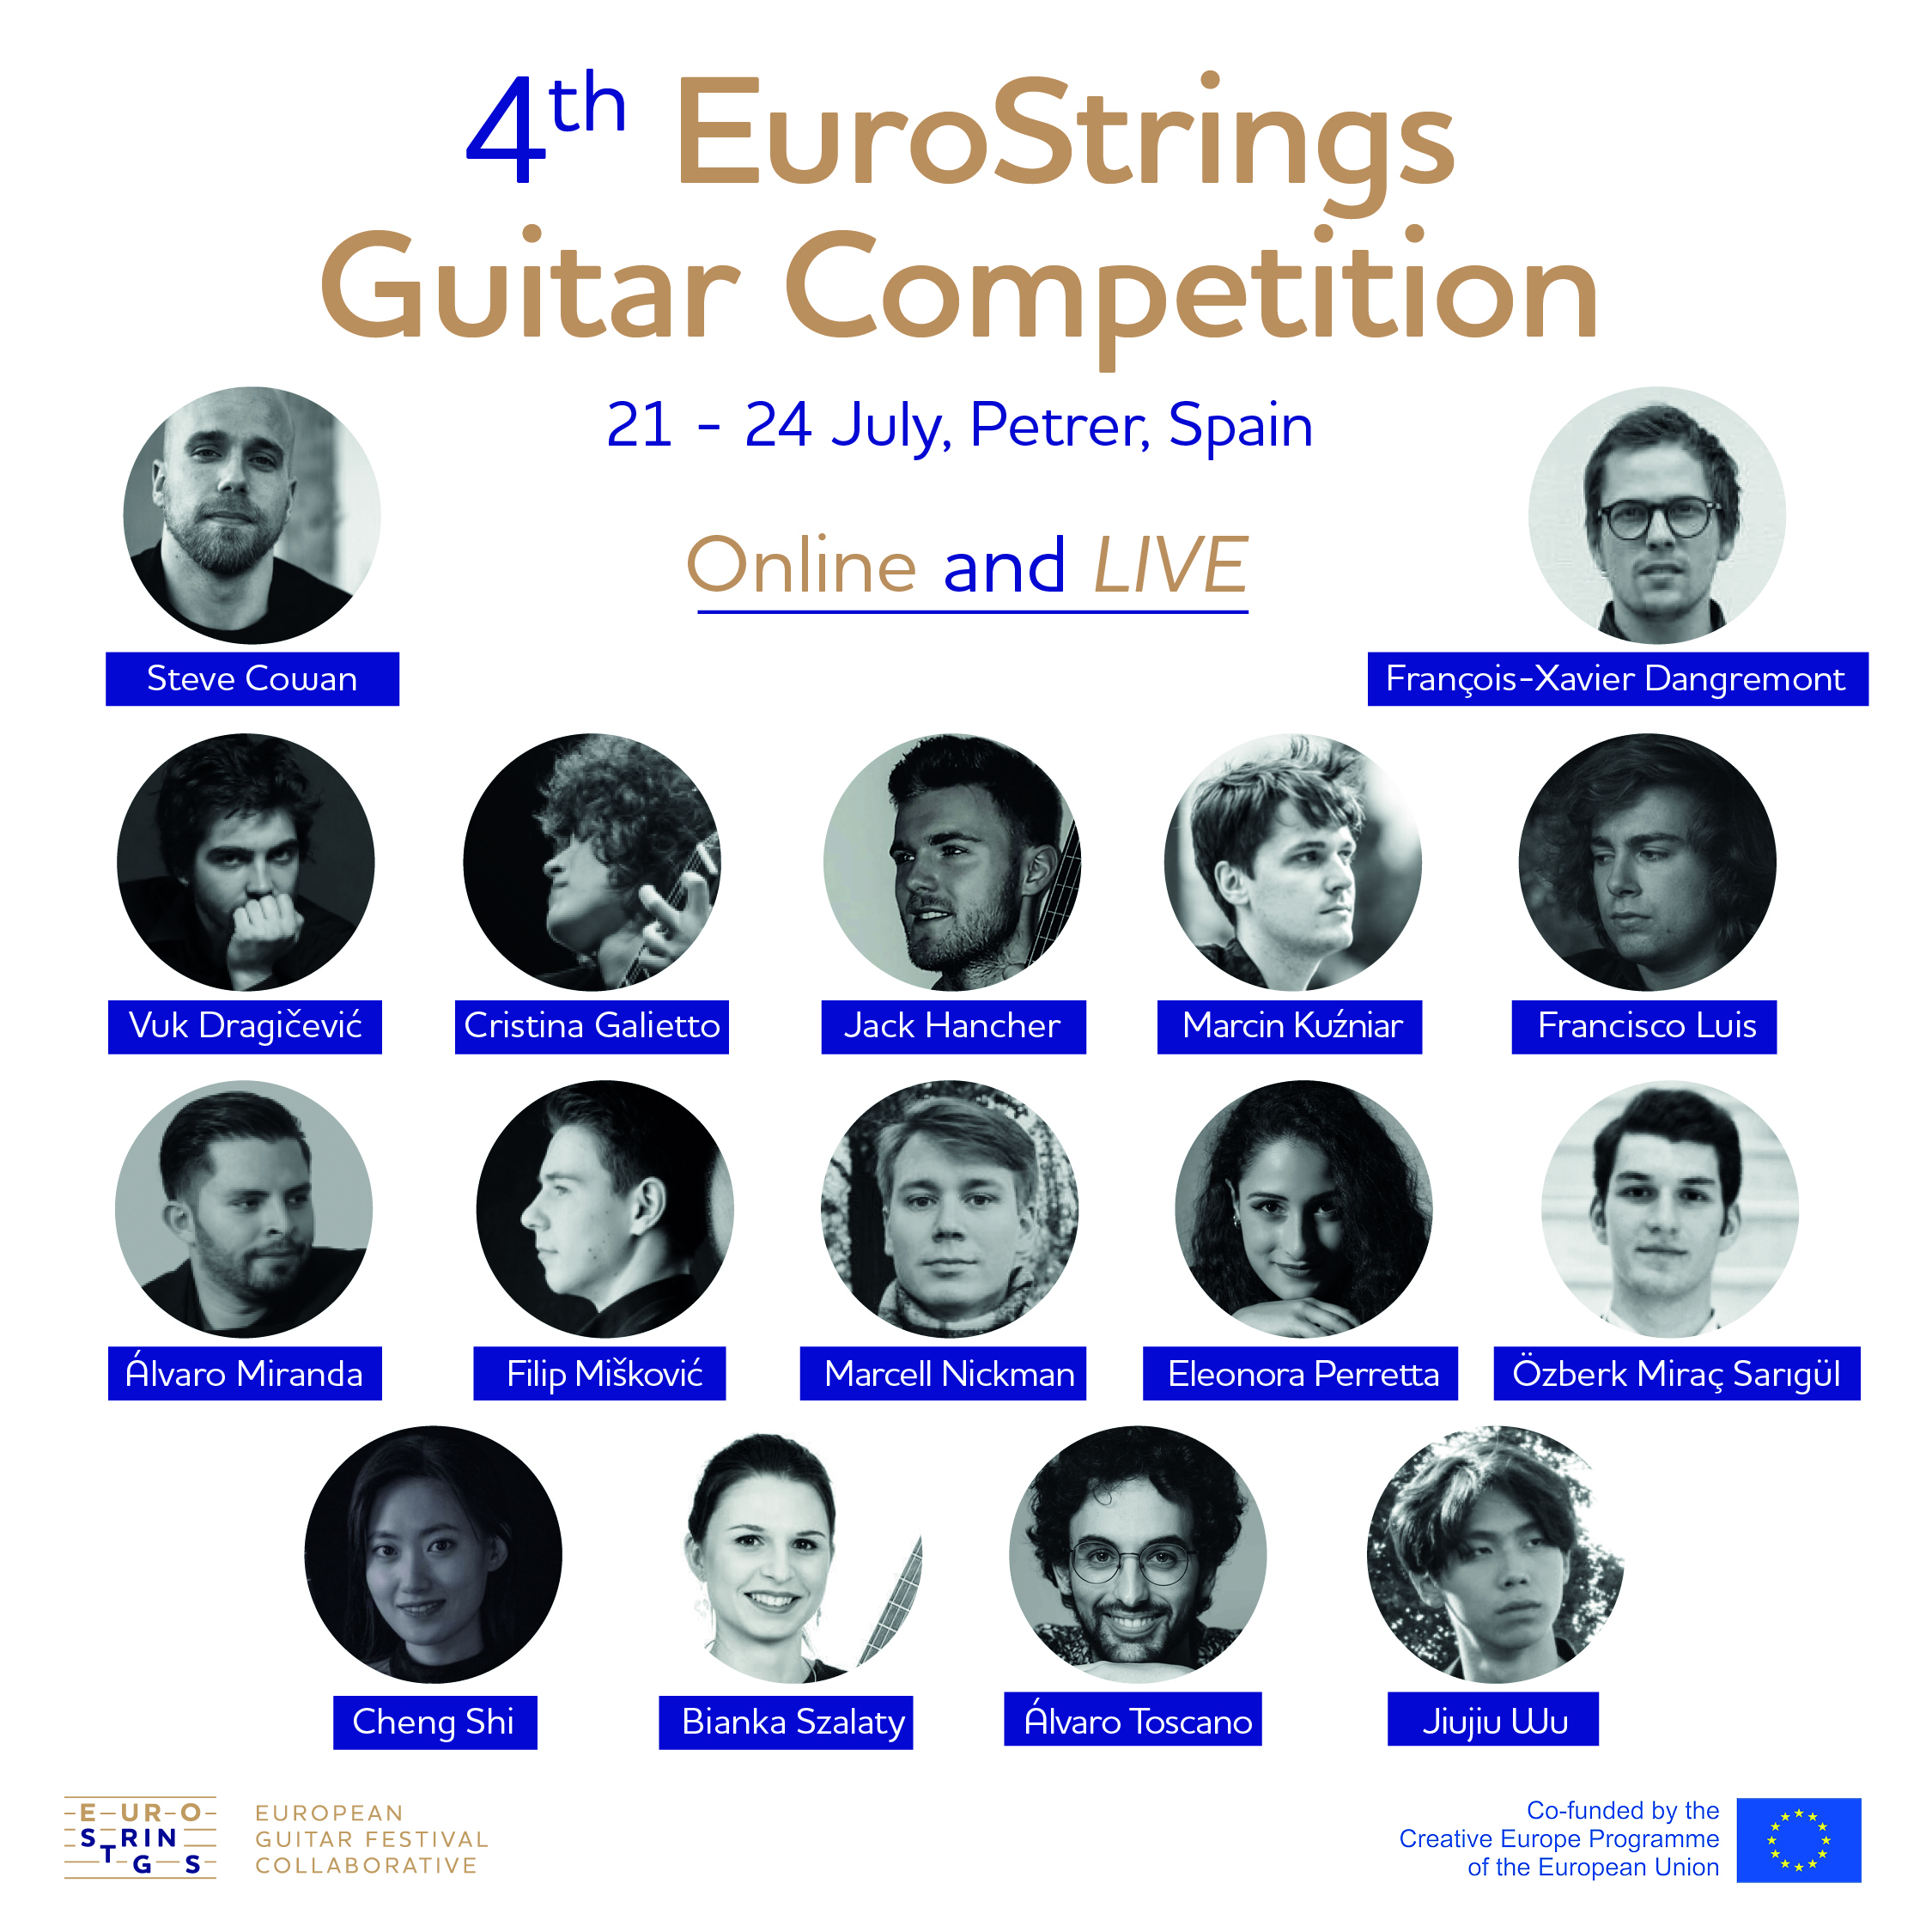 210701_EuroStrings_4thCompetition_1080x1080_update